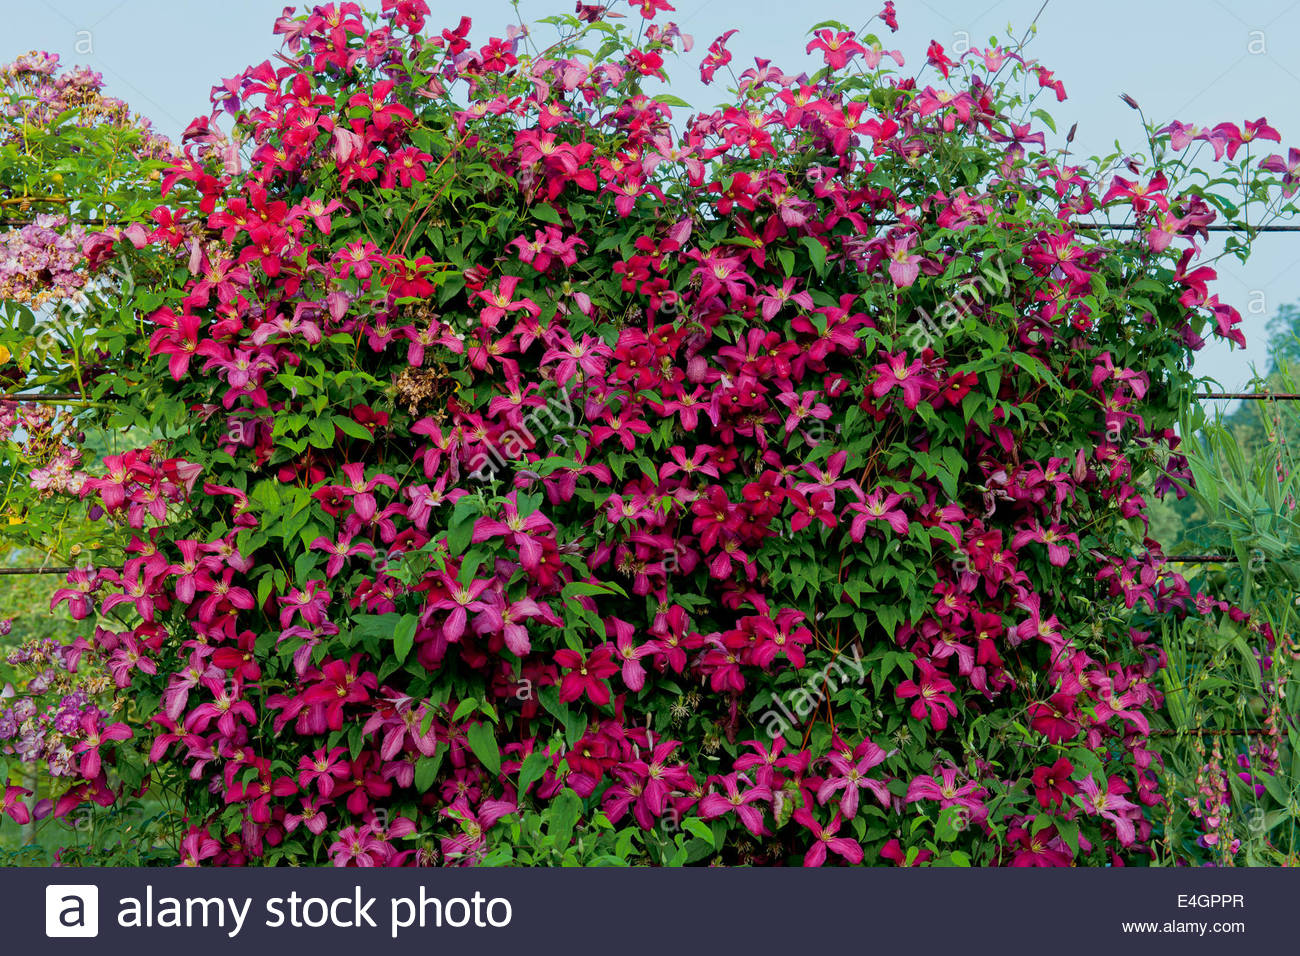 Clematis madame julia correvon climbing fence divider west for Climbing flowering plants for fences